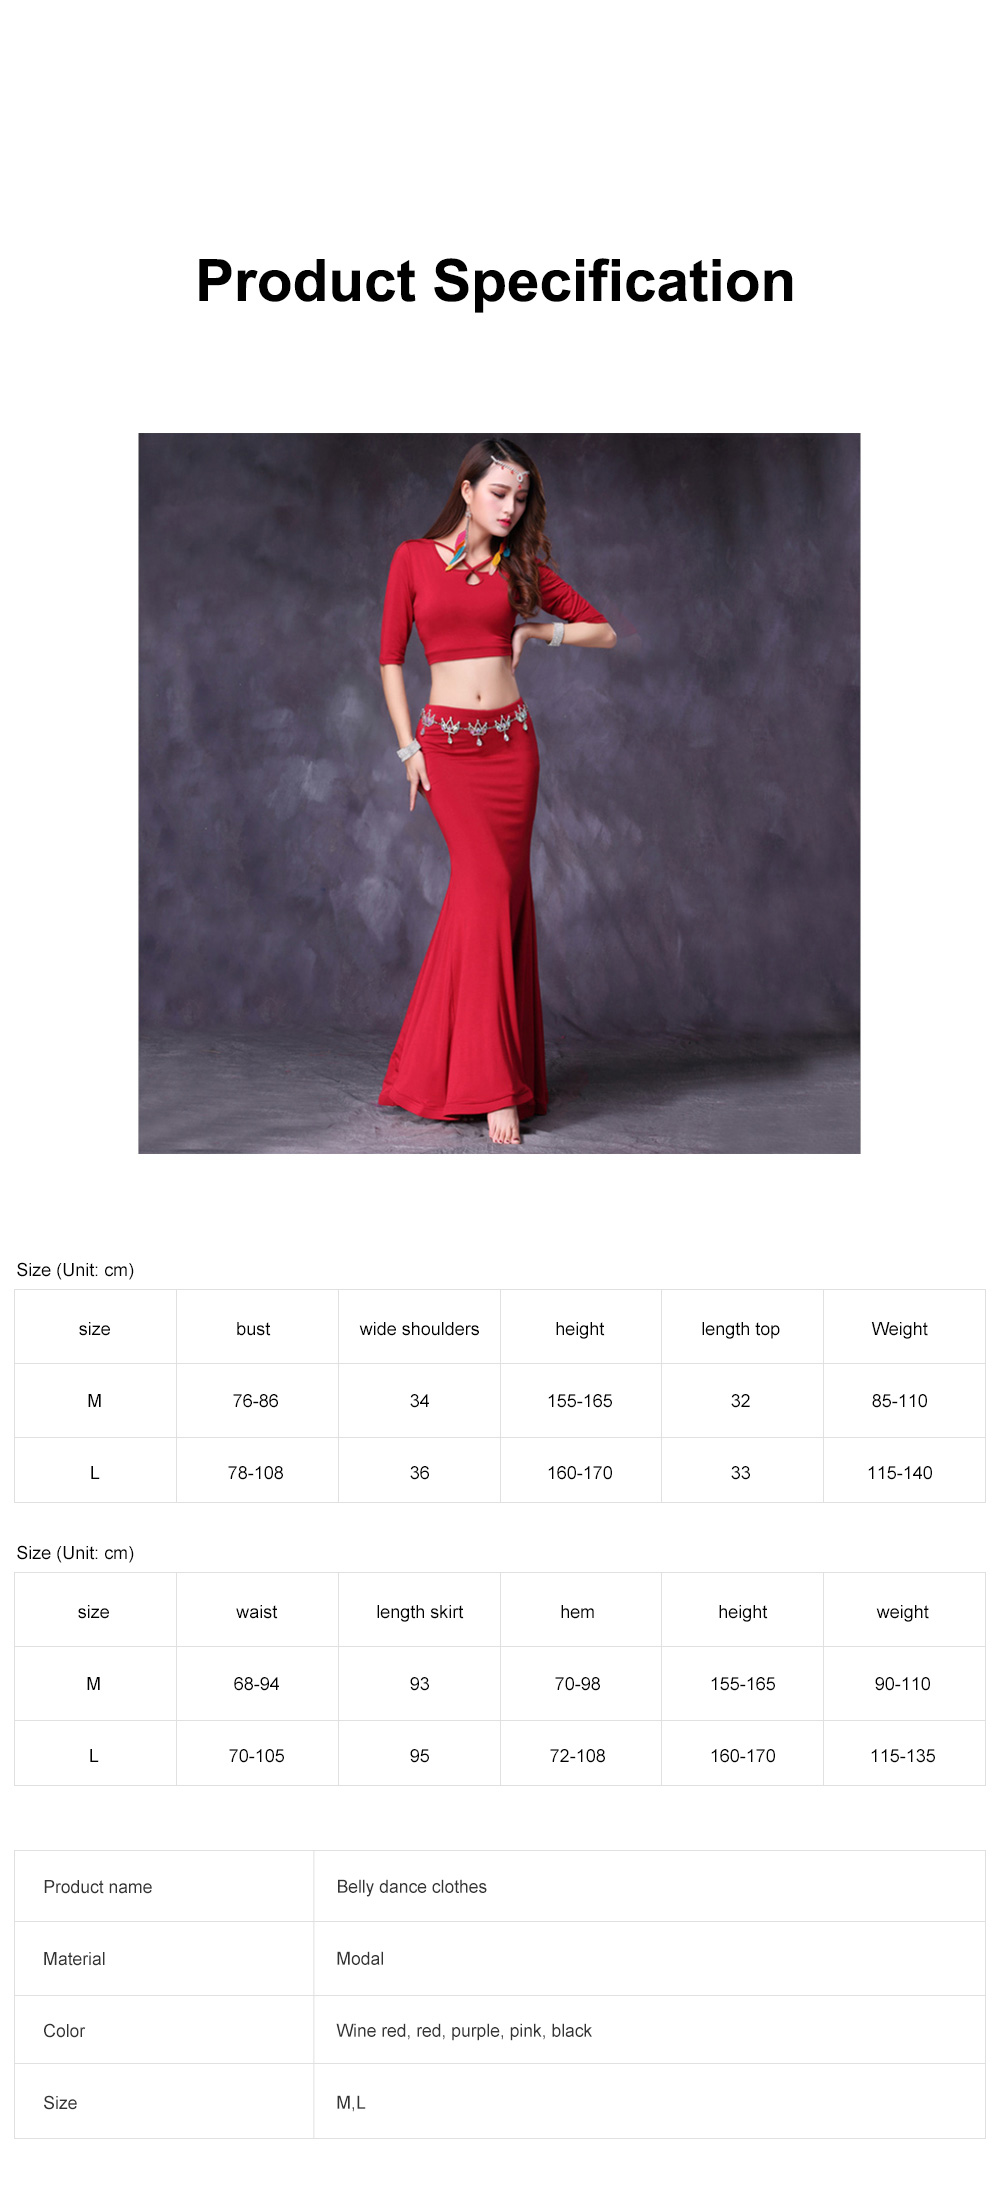 Belly Dance Costume Solid Color Set with Jewelry Decoration Fishtail Hemline Sheathe Dress 6